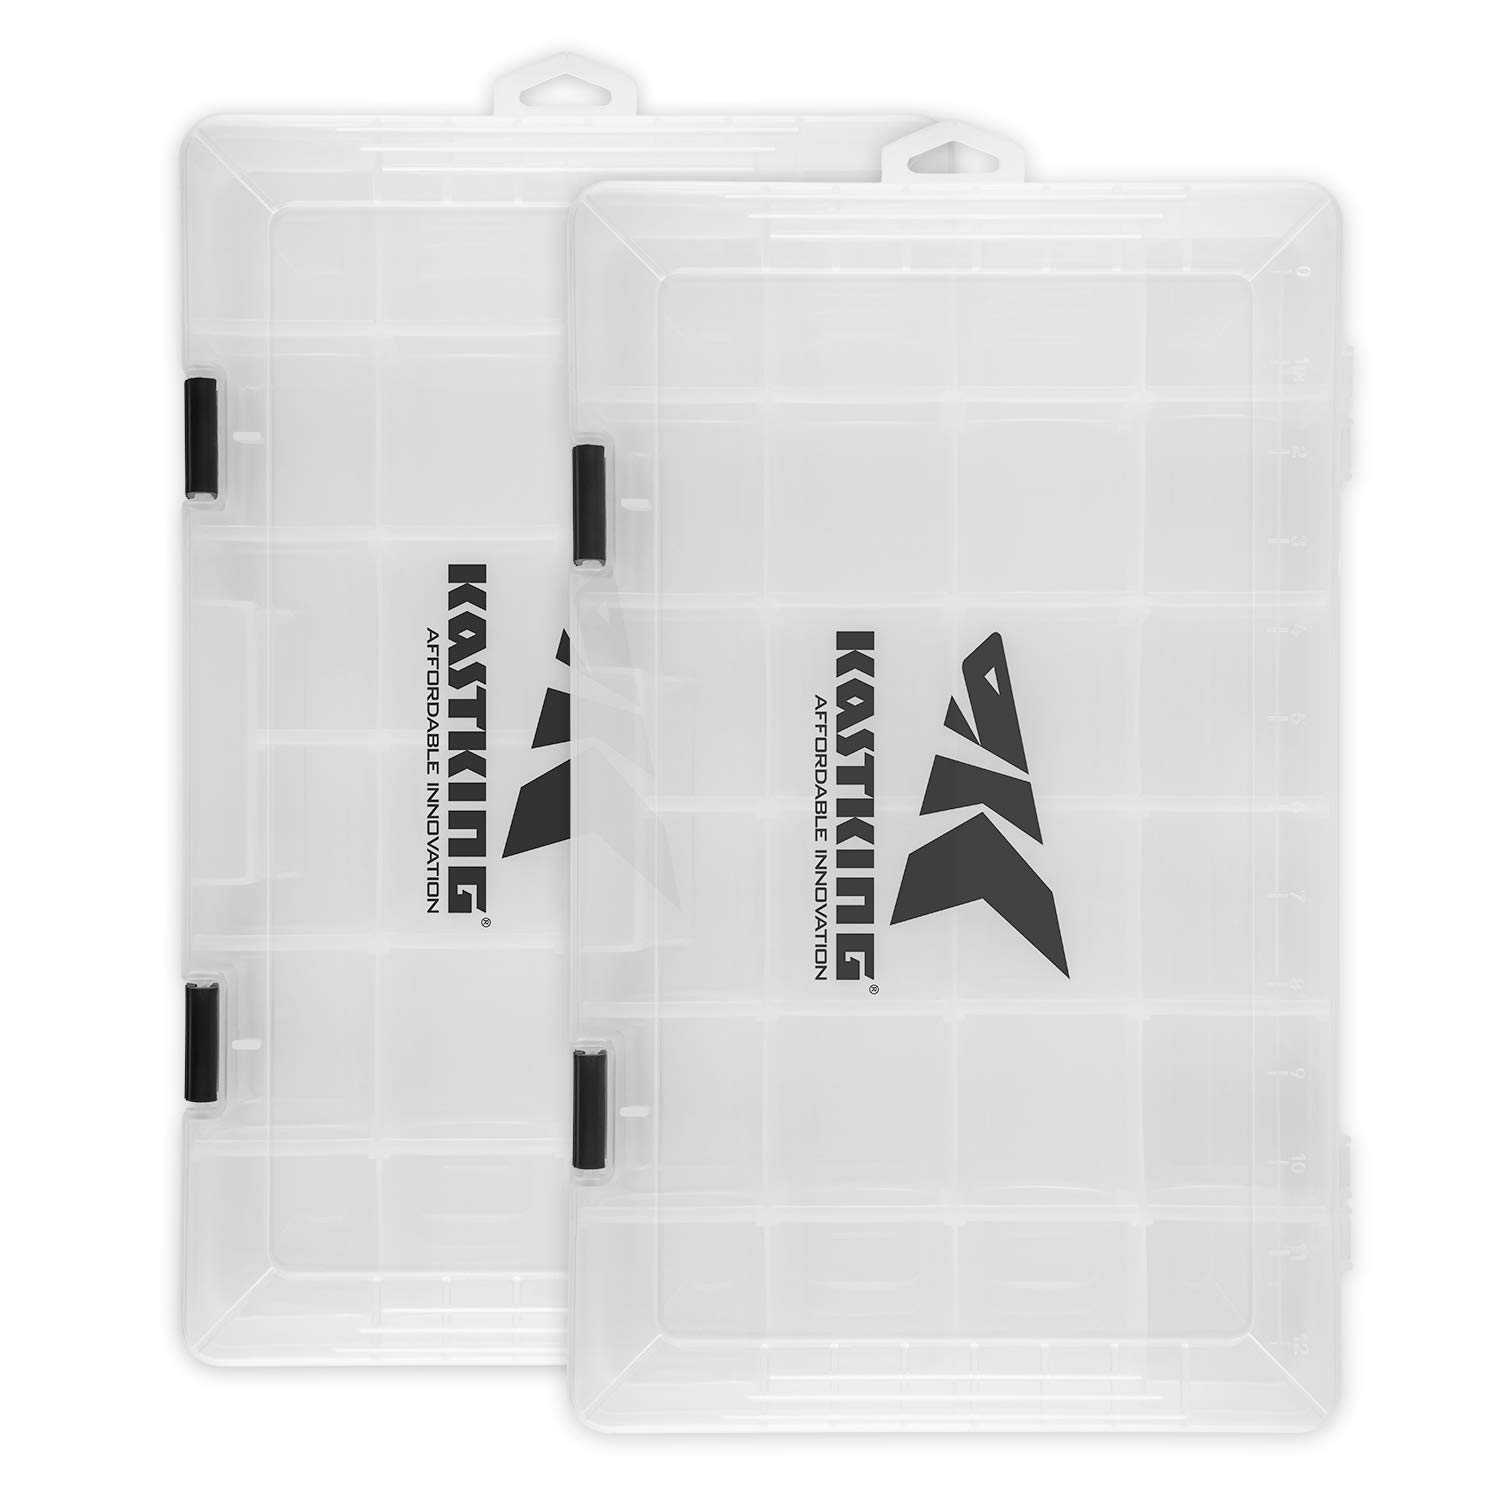 KastKing Tackle Boxes,Two 3700 Trays, 14x8.25x1.75 Inches by KastKing